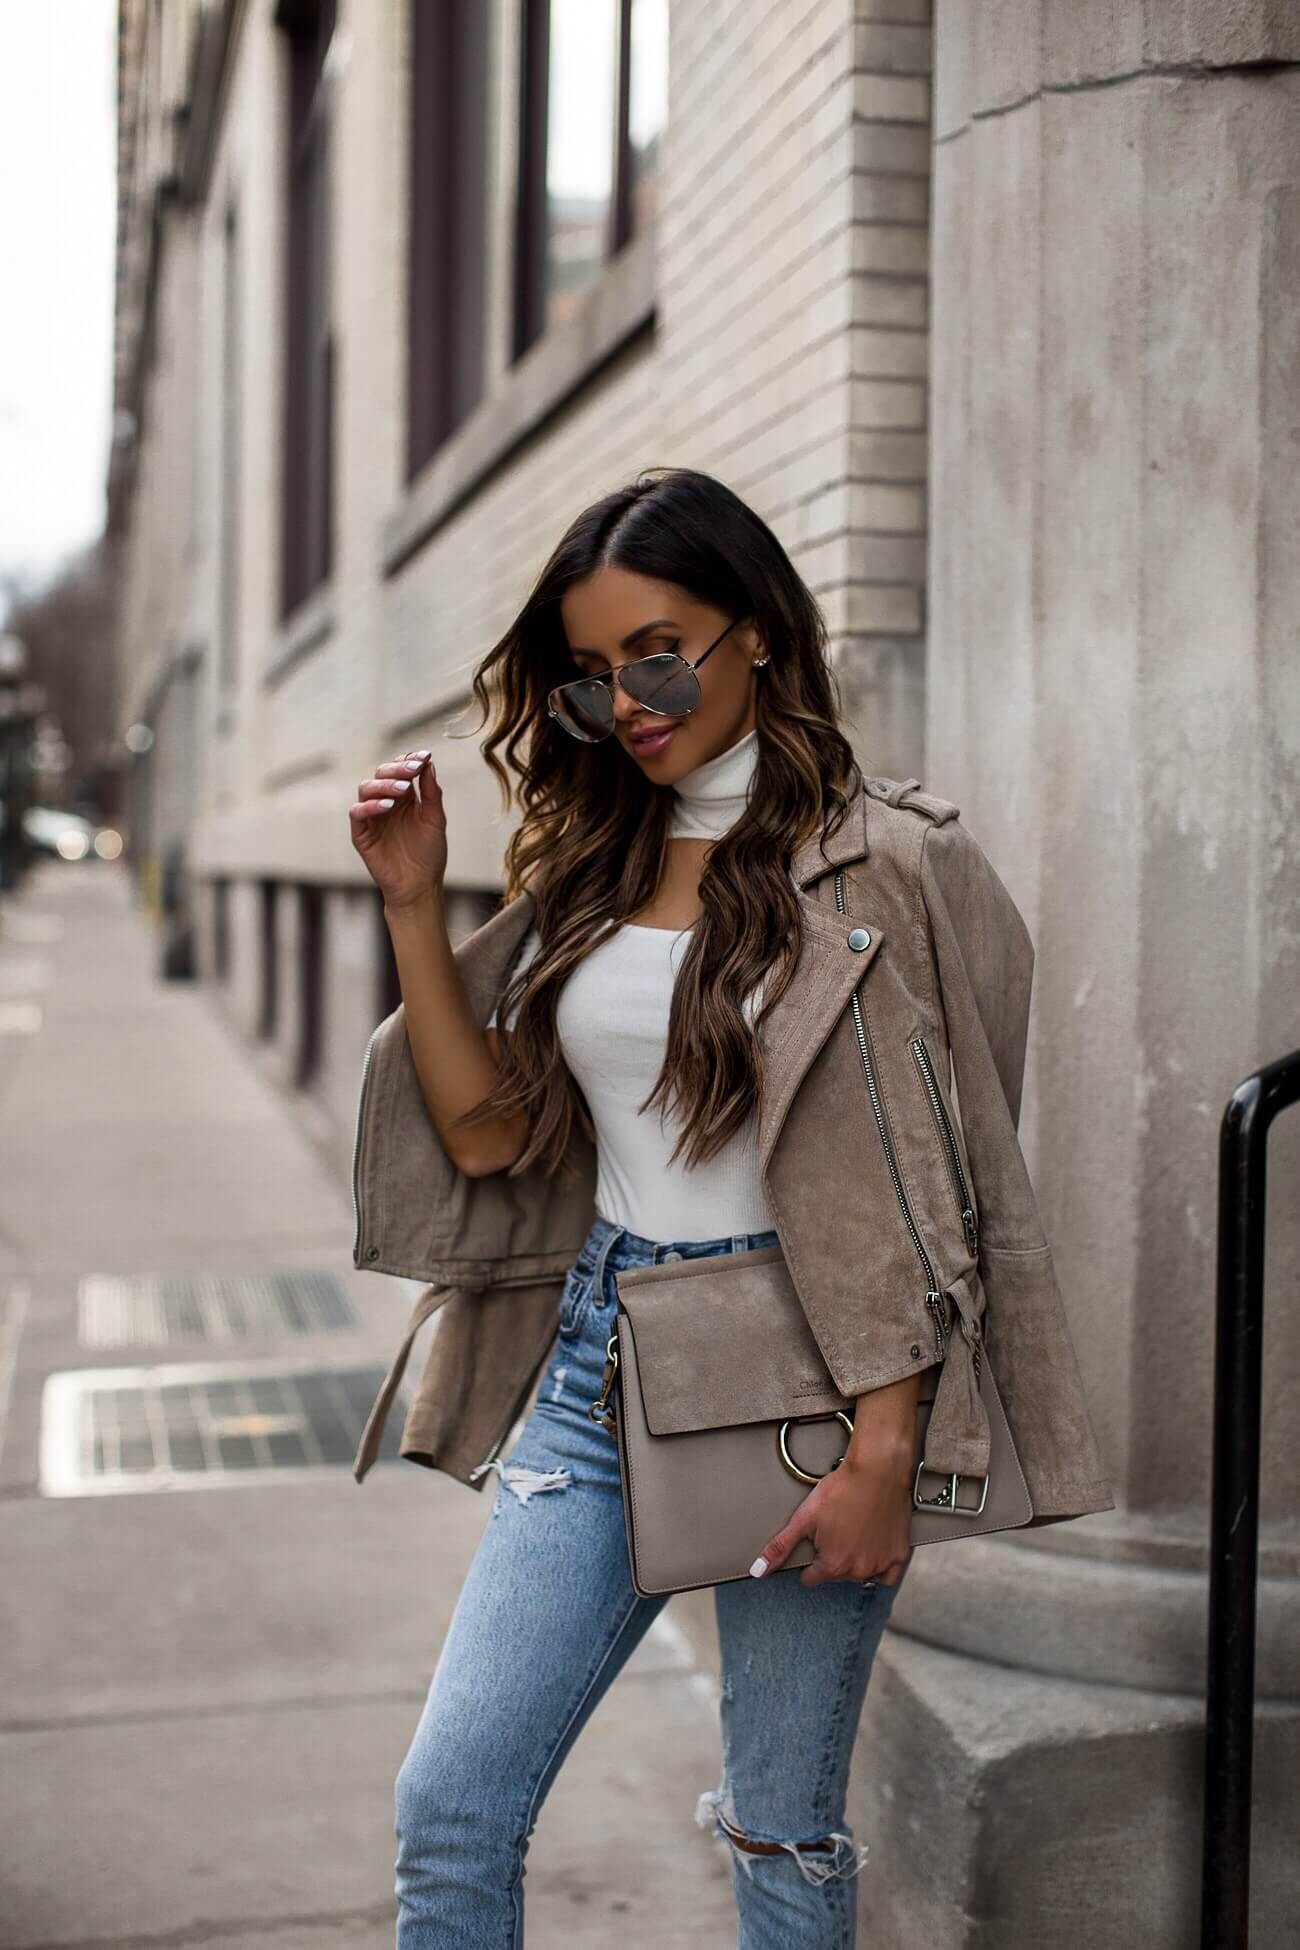 Beige Leather Jacket Mia Mia Mine In 2021 Fashion Outfits Outfit Details [ 1950 x 1300 Pixel ]